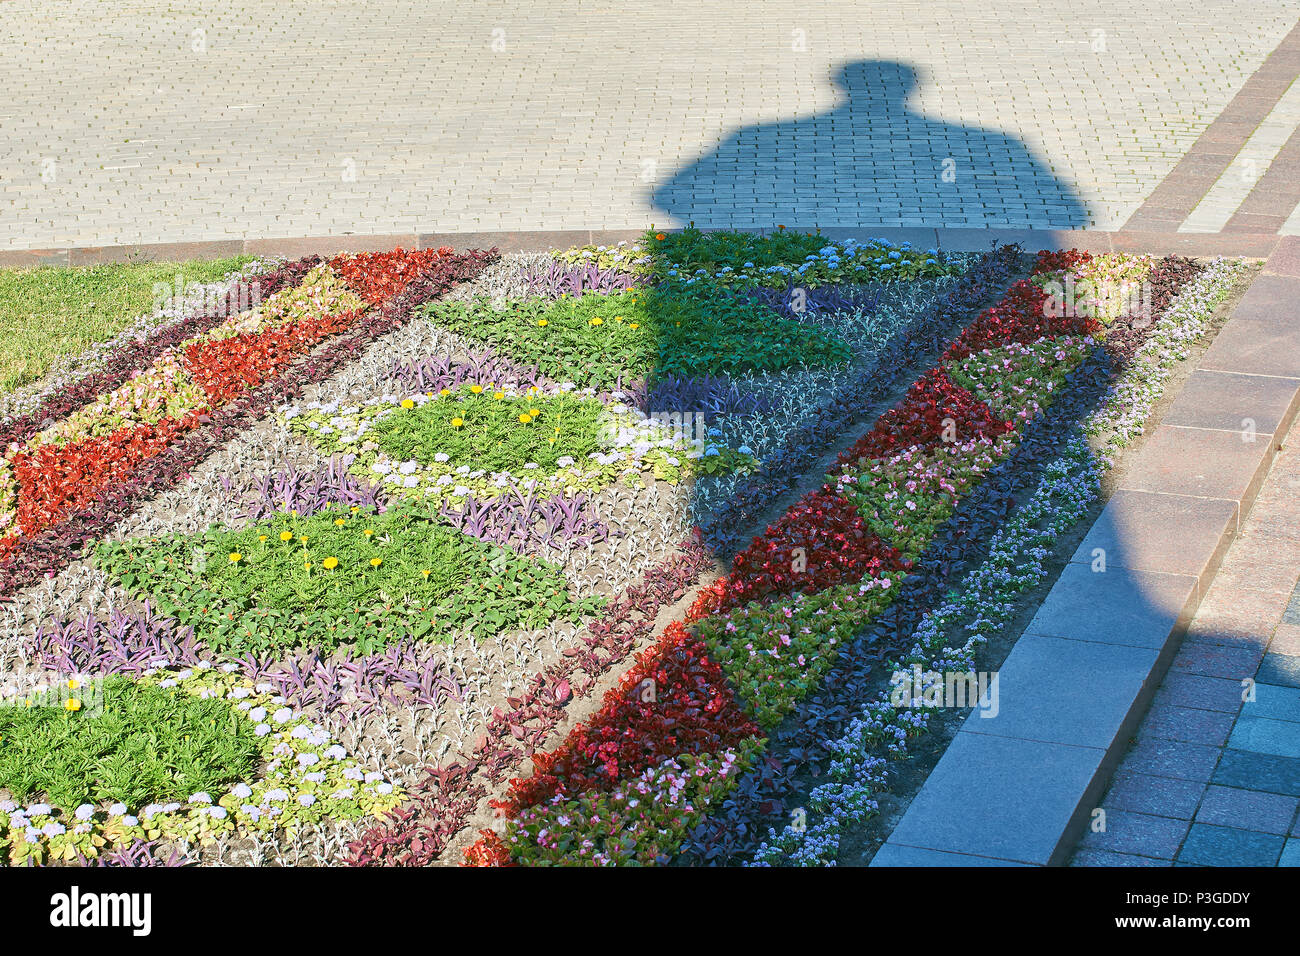 Shadow of the monument to Taras Shevchenko, Ukrainian poet, writer, artist, public and political figure, as well as folklorist and ethnographer on a sunny morning in Kyiv, Ukraine - Stock Image